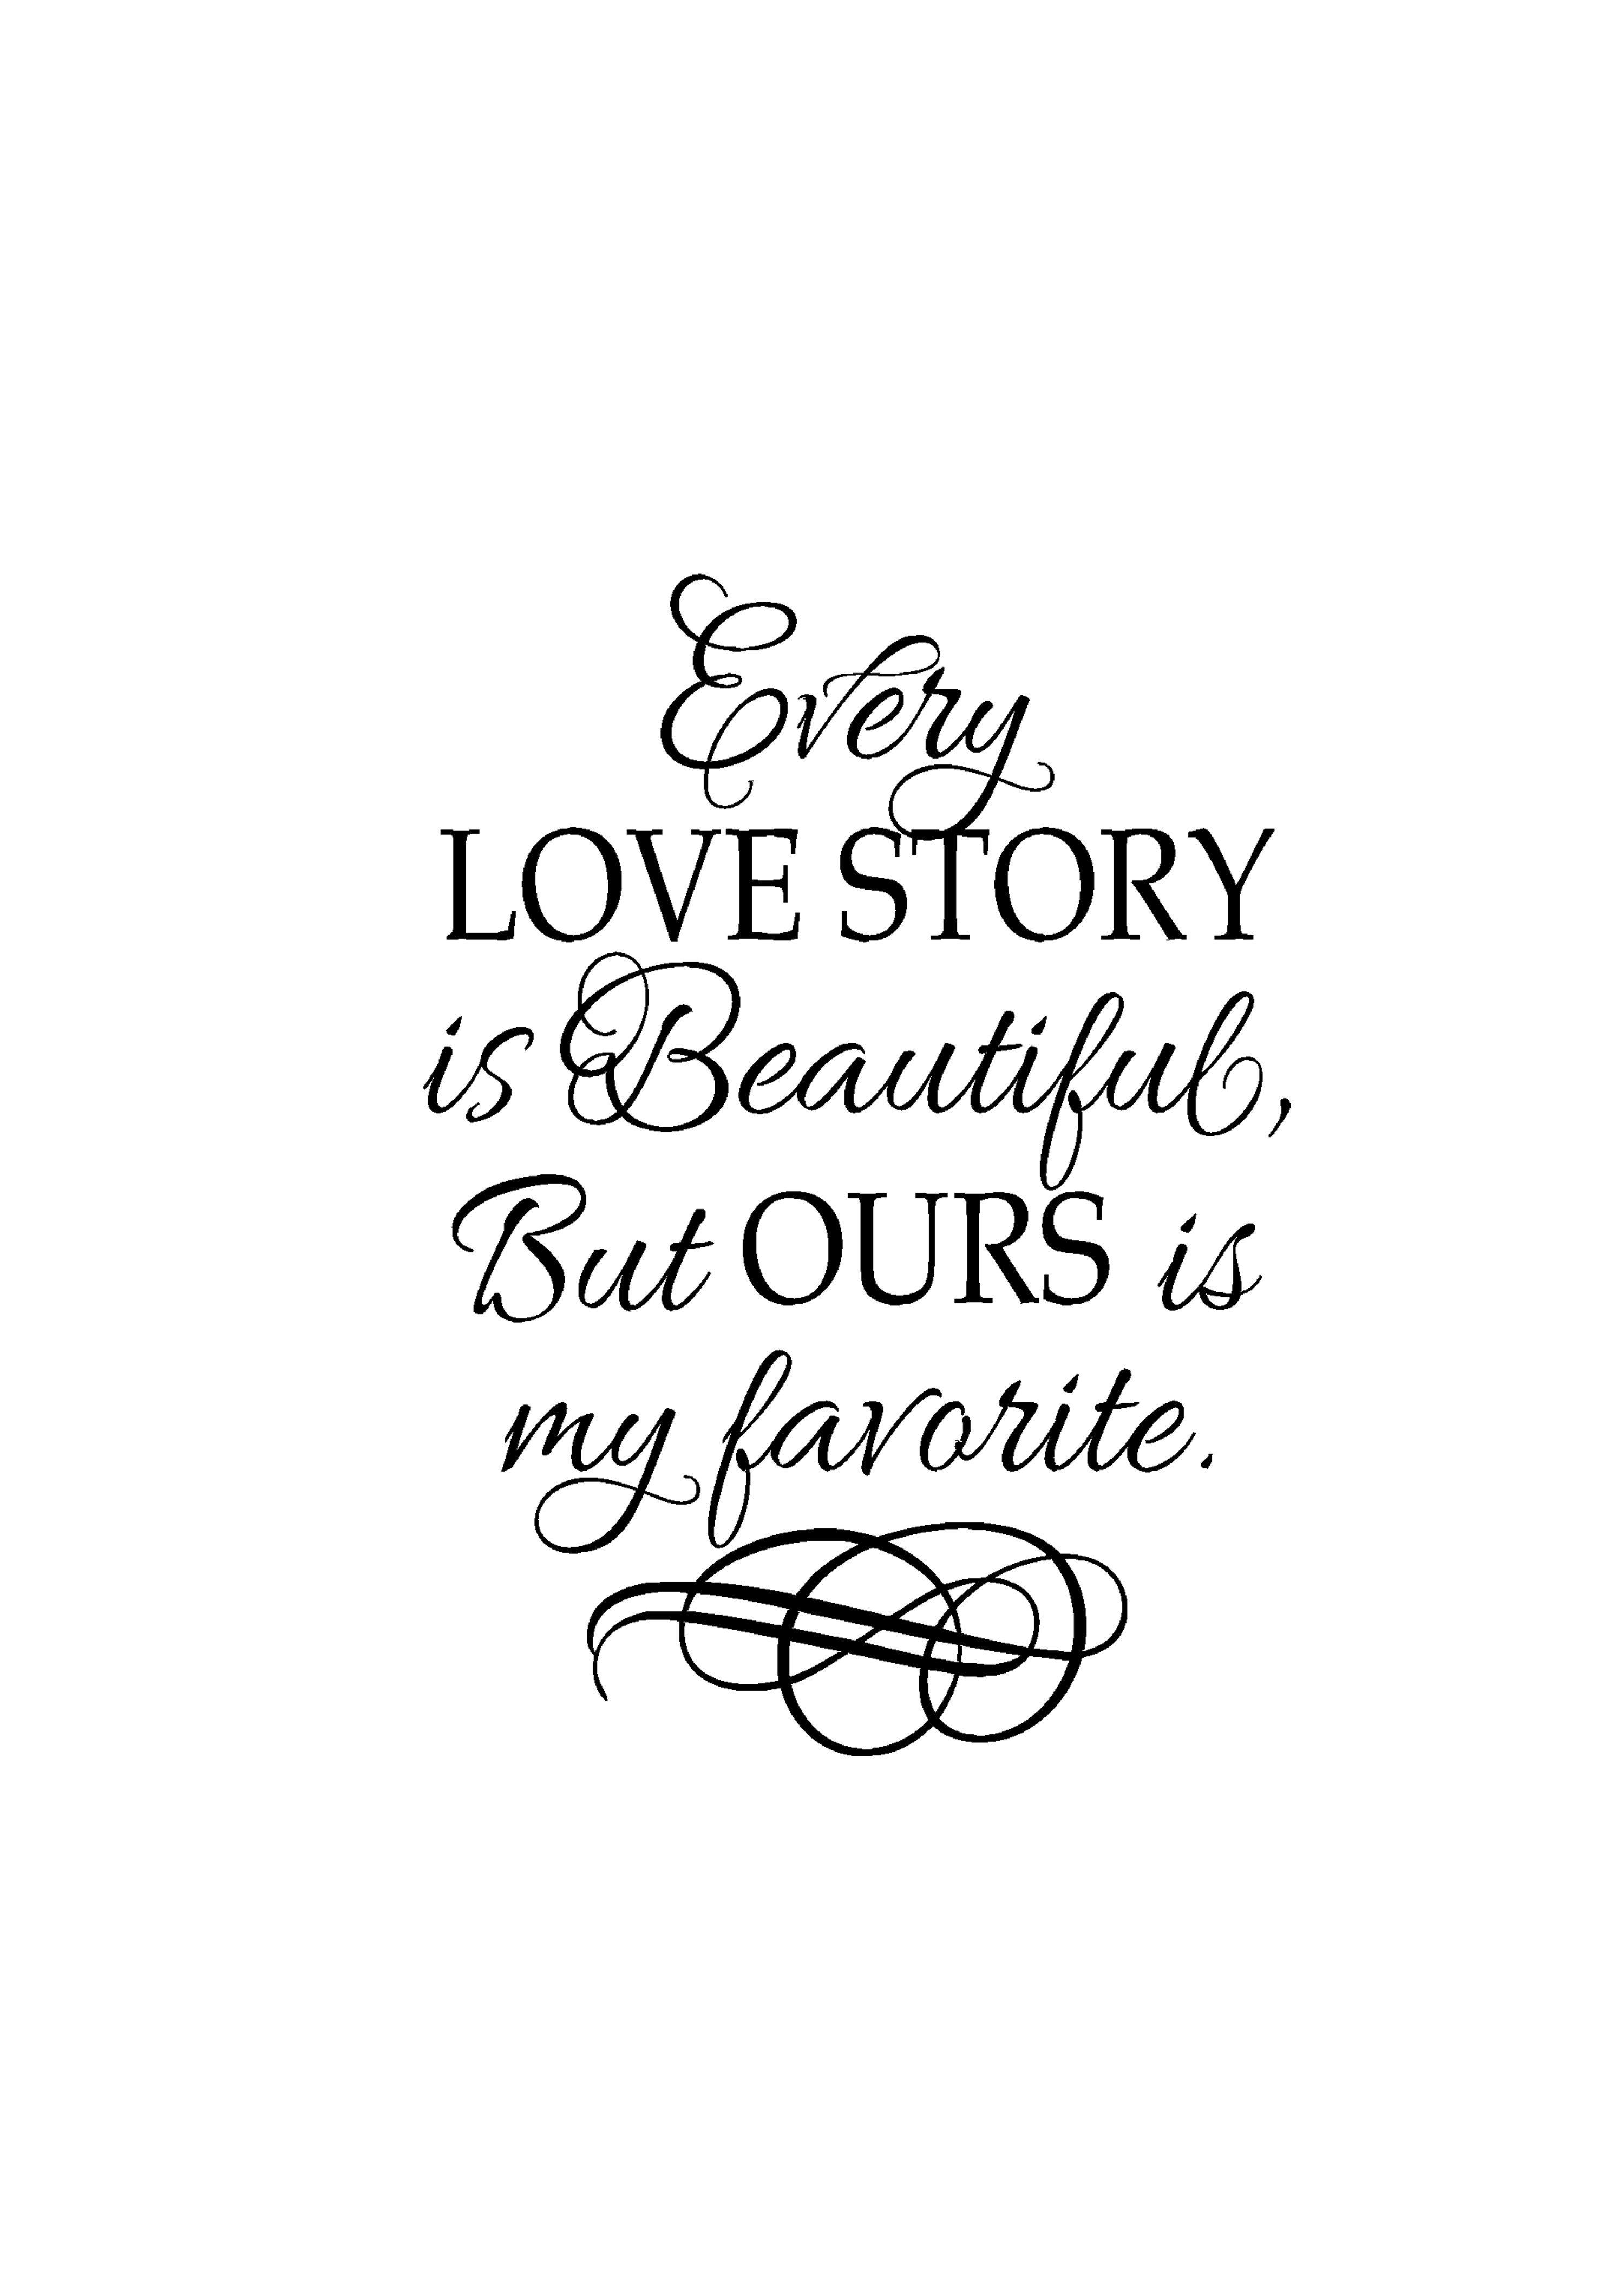 10 Ideal Ideas For A Love Story great love story quotes 1000 ideas about true love stories on